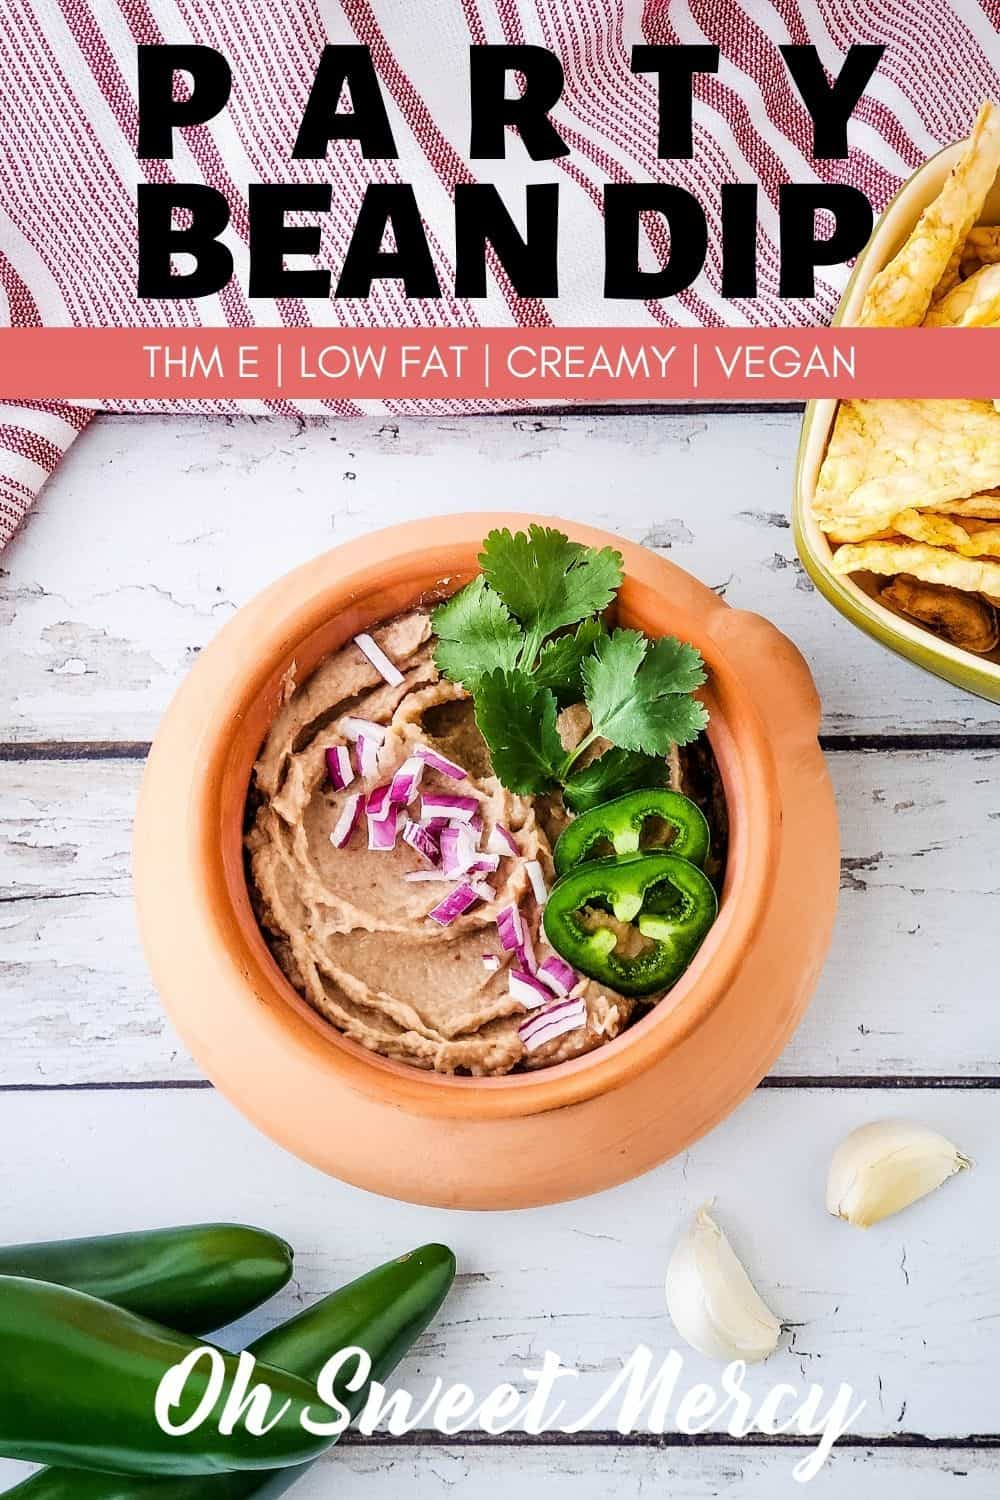 Low fat party bean dip that everyone will love? I've got that for you! This bean dip is creamy and flavorful - you'll never miss the fat! Great for THM snacks and serving at parties and get togethers. #thm #beandip #lowfat #vegan #partyfood @ohsweetmercy